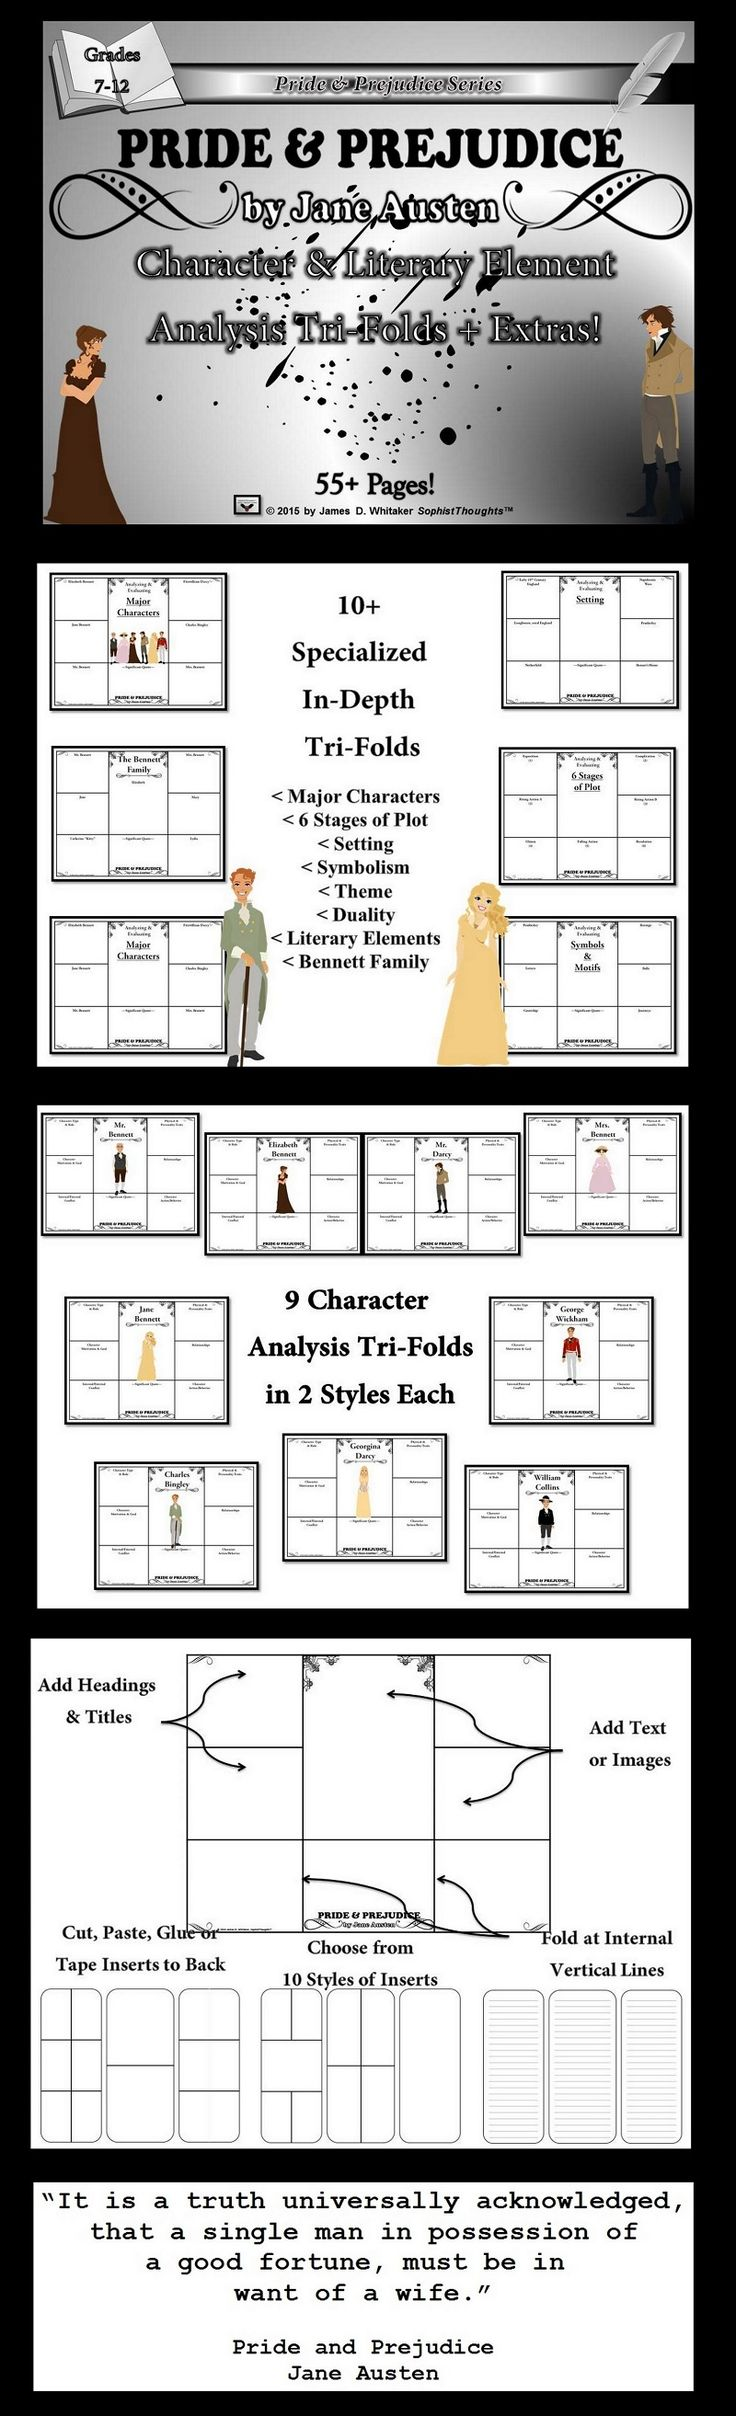 best pride and prejudice analysis ideas jane  pride prejudice by jane austen character literary element analysis tri folds extras